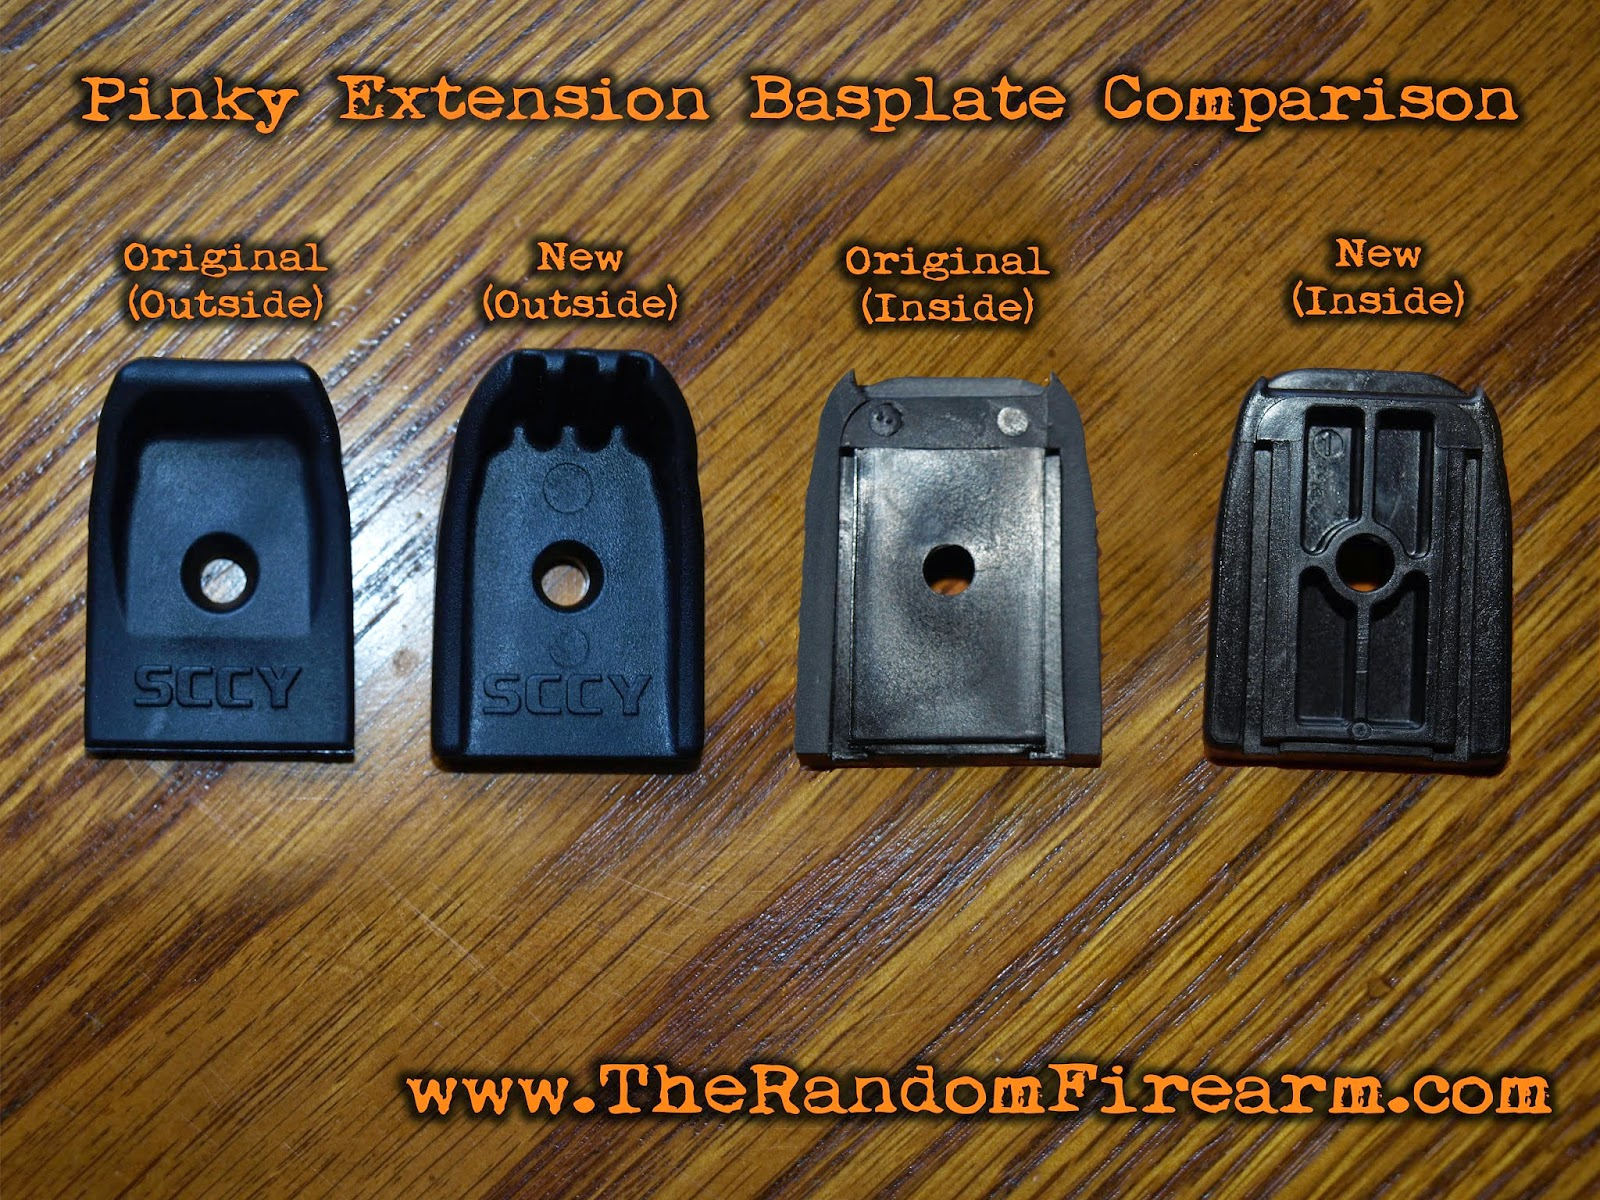 sccy cpx2 review warranty service no questions asked compact 9mm handgun pistol baseplate magazine